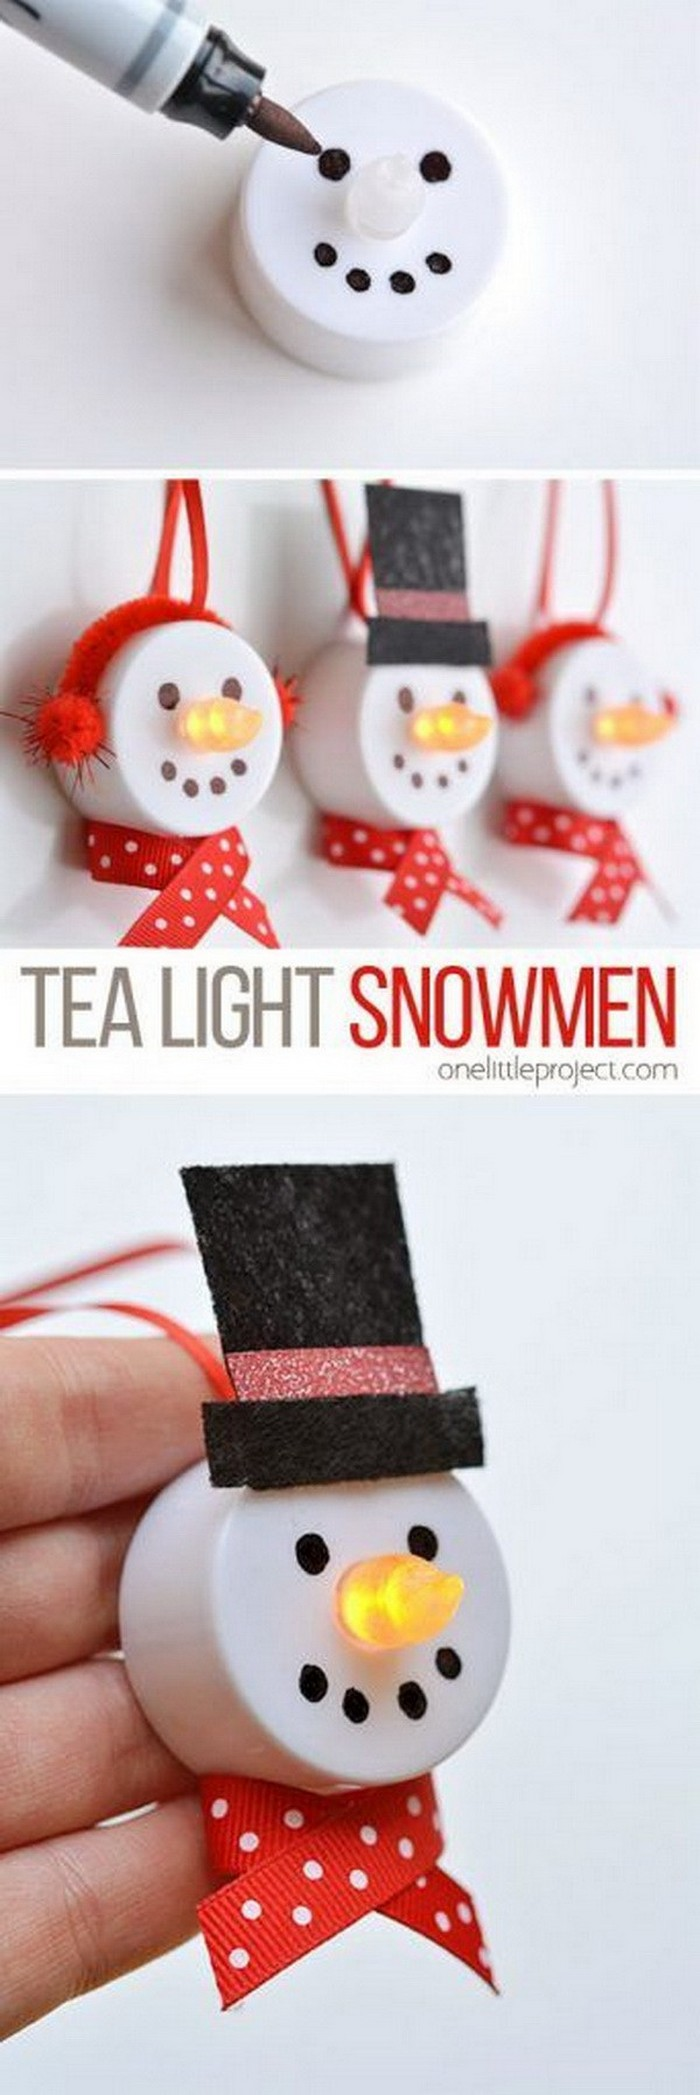 20 Easy DIY Christmas Crafts To Try This Christmas • DIY Home Decor